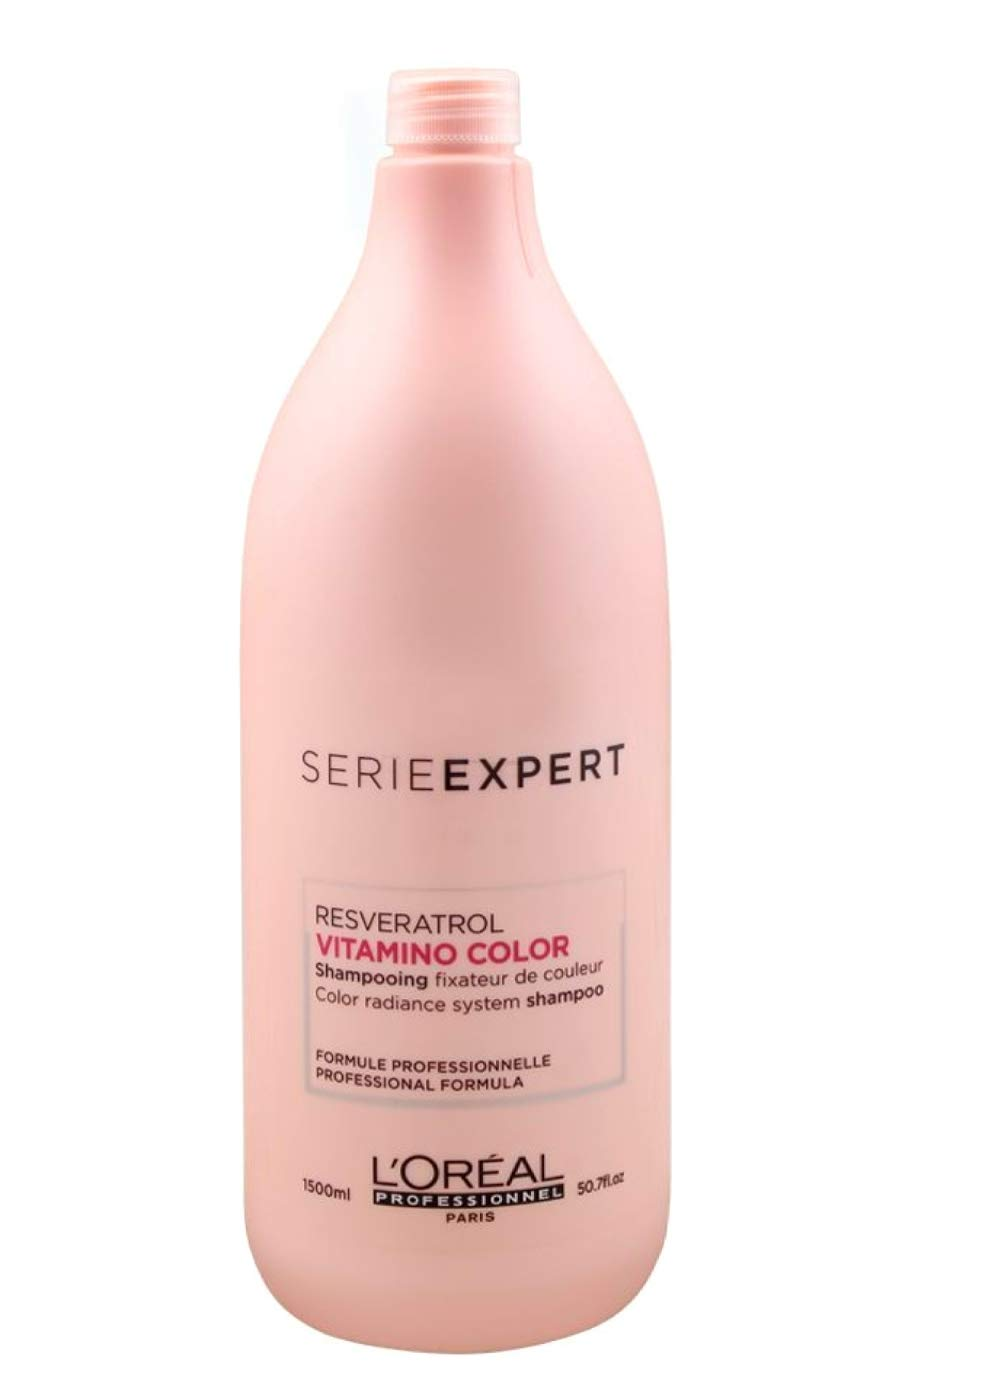 L'oreal Serie Expert Vitamino Color Shampoo Oun Unisex 50.7 for Max Very popular! 65% OFF